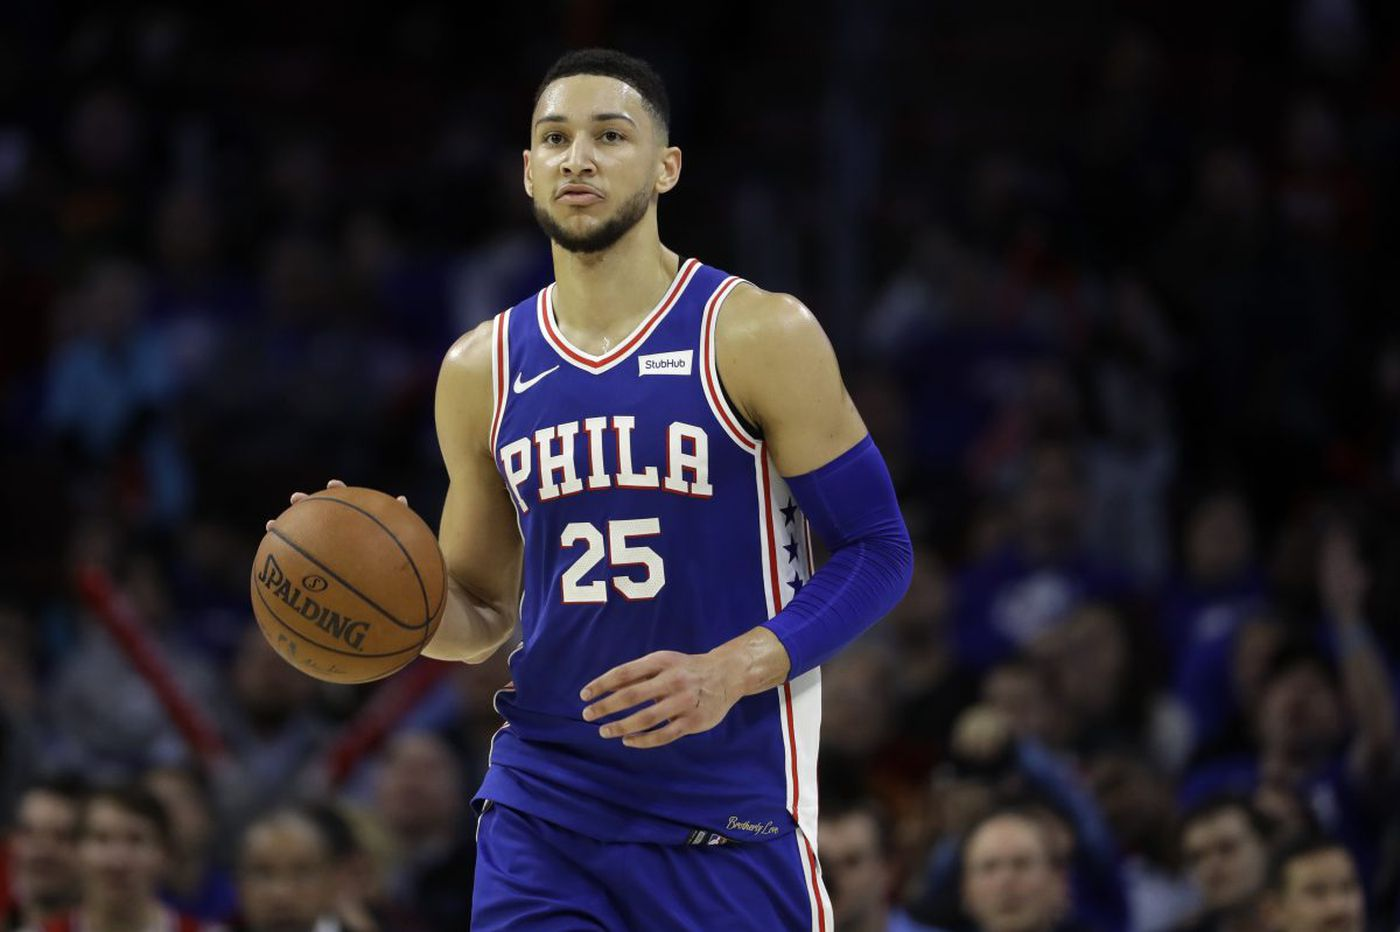 Sixers' Ben Simmons shows support for March for our Lives: 'I don't believe anyone should have to worry about somebody coming in and shooting up a place'